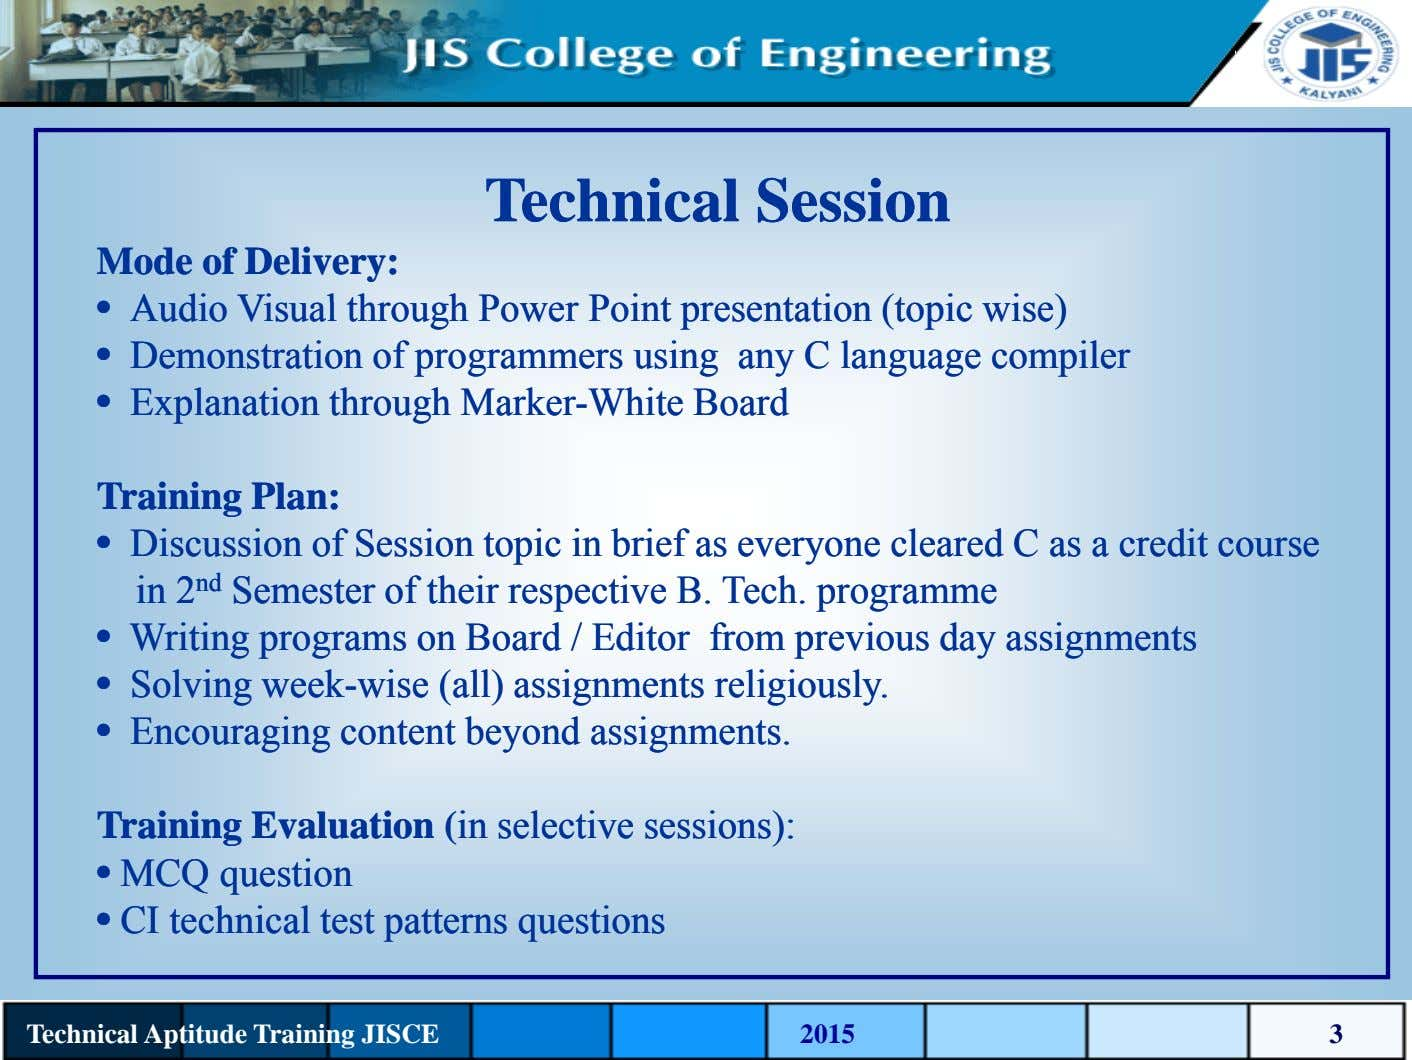 TechnicalTechnical SessionSession ModeMode ofof Delivery:Delivery: •• AAuudiodio VisVisuualal throthrouughgh